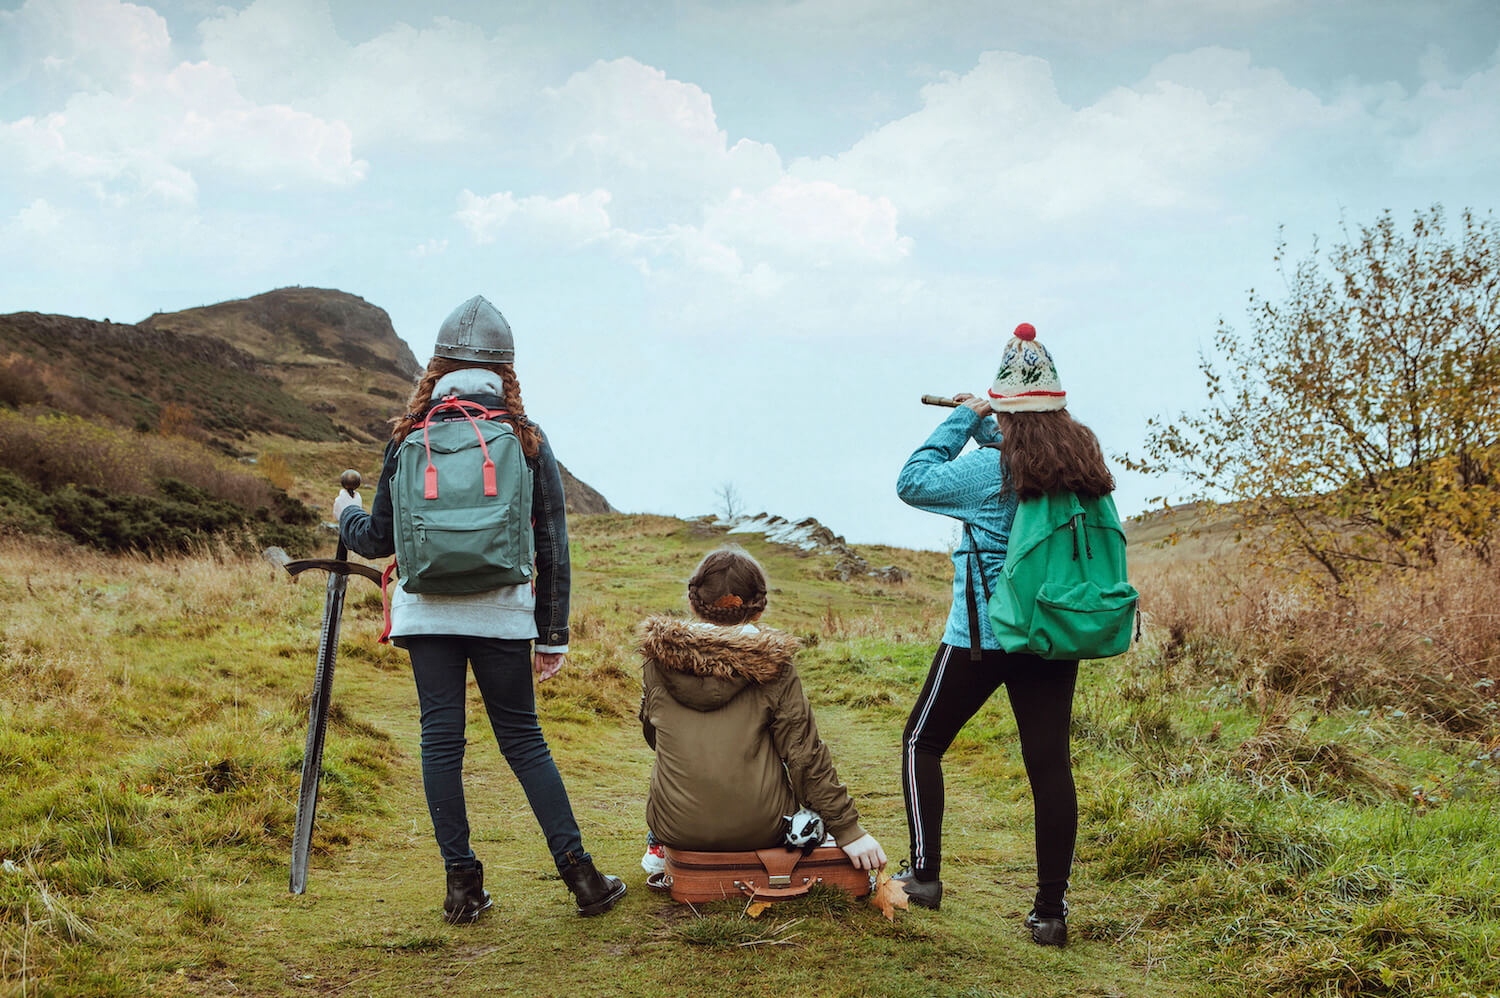 This Girl promotional image showing three girls dressed in outdoor gear out in the hills, one is looking through a telescope, image take from the back